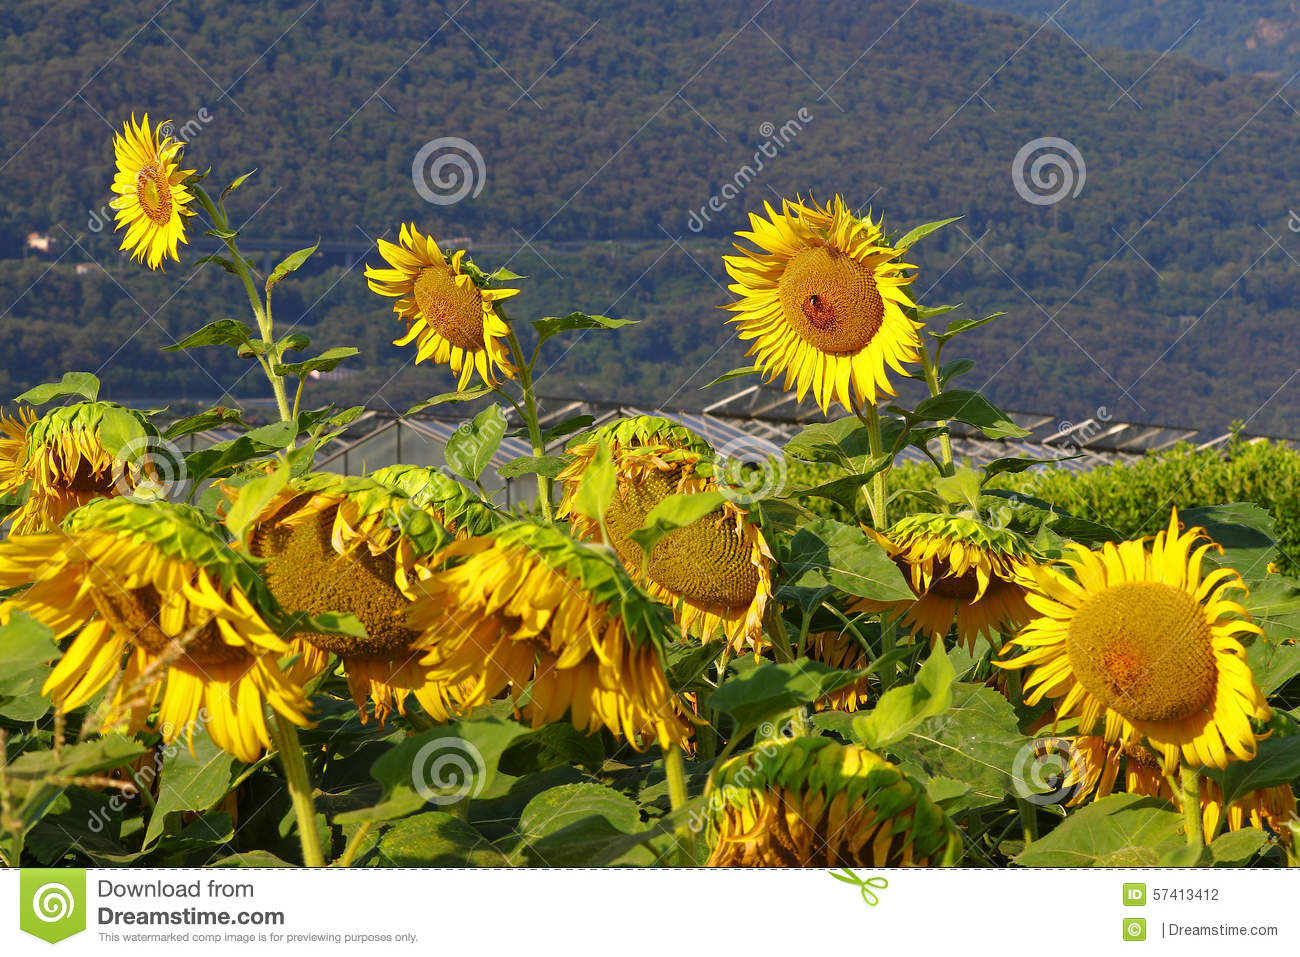 sunflower farming business plan